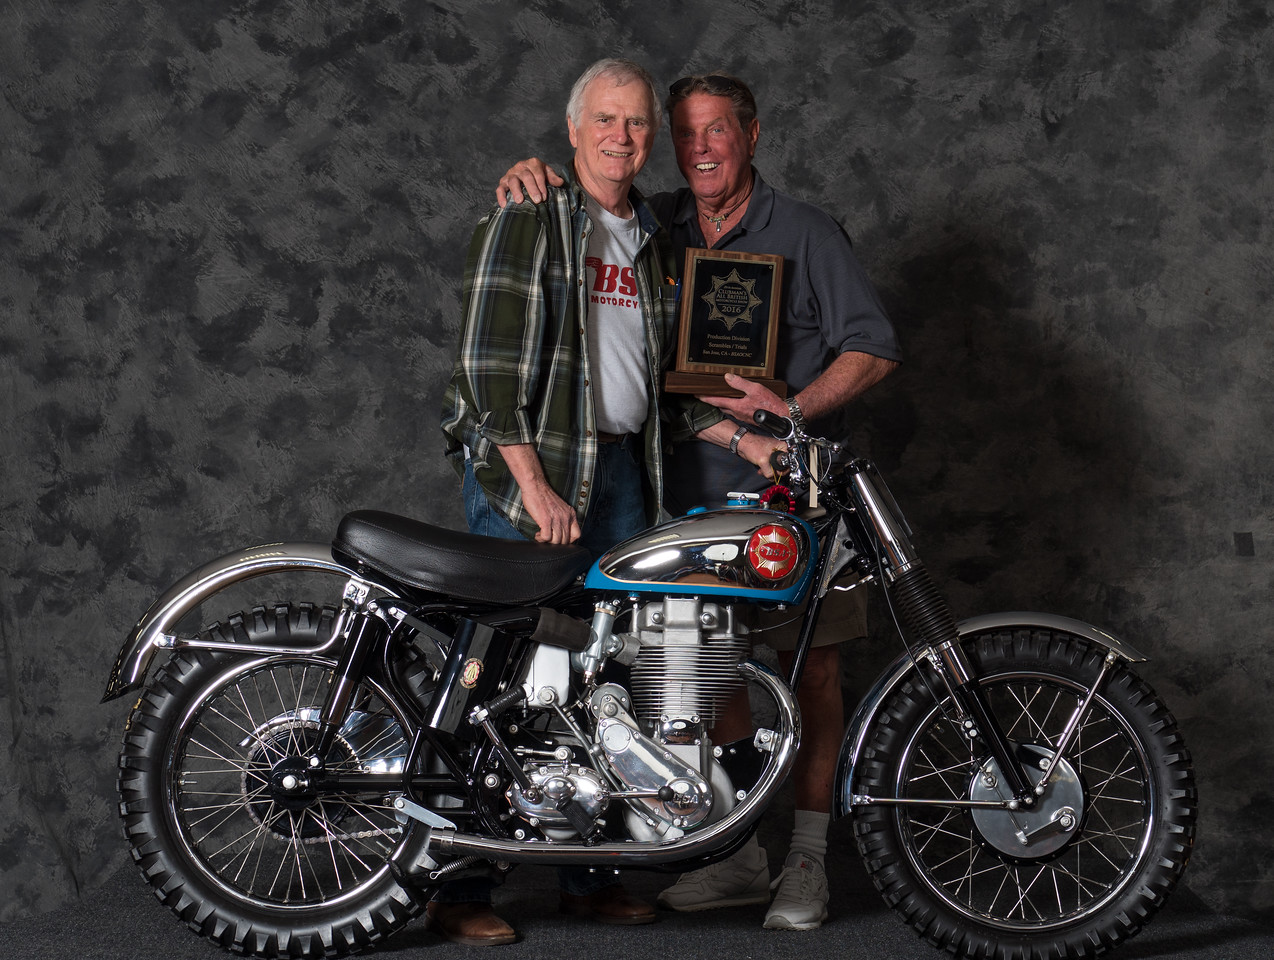 Dan Lowery, 1961 BSA Gold Star Catalina Scrambler,	Winning class: Scrambles/Trials, Production